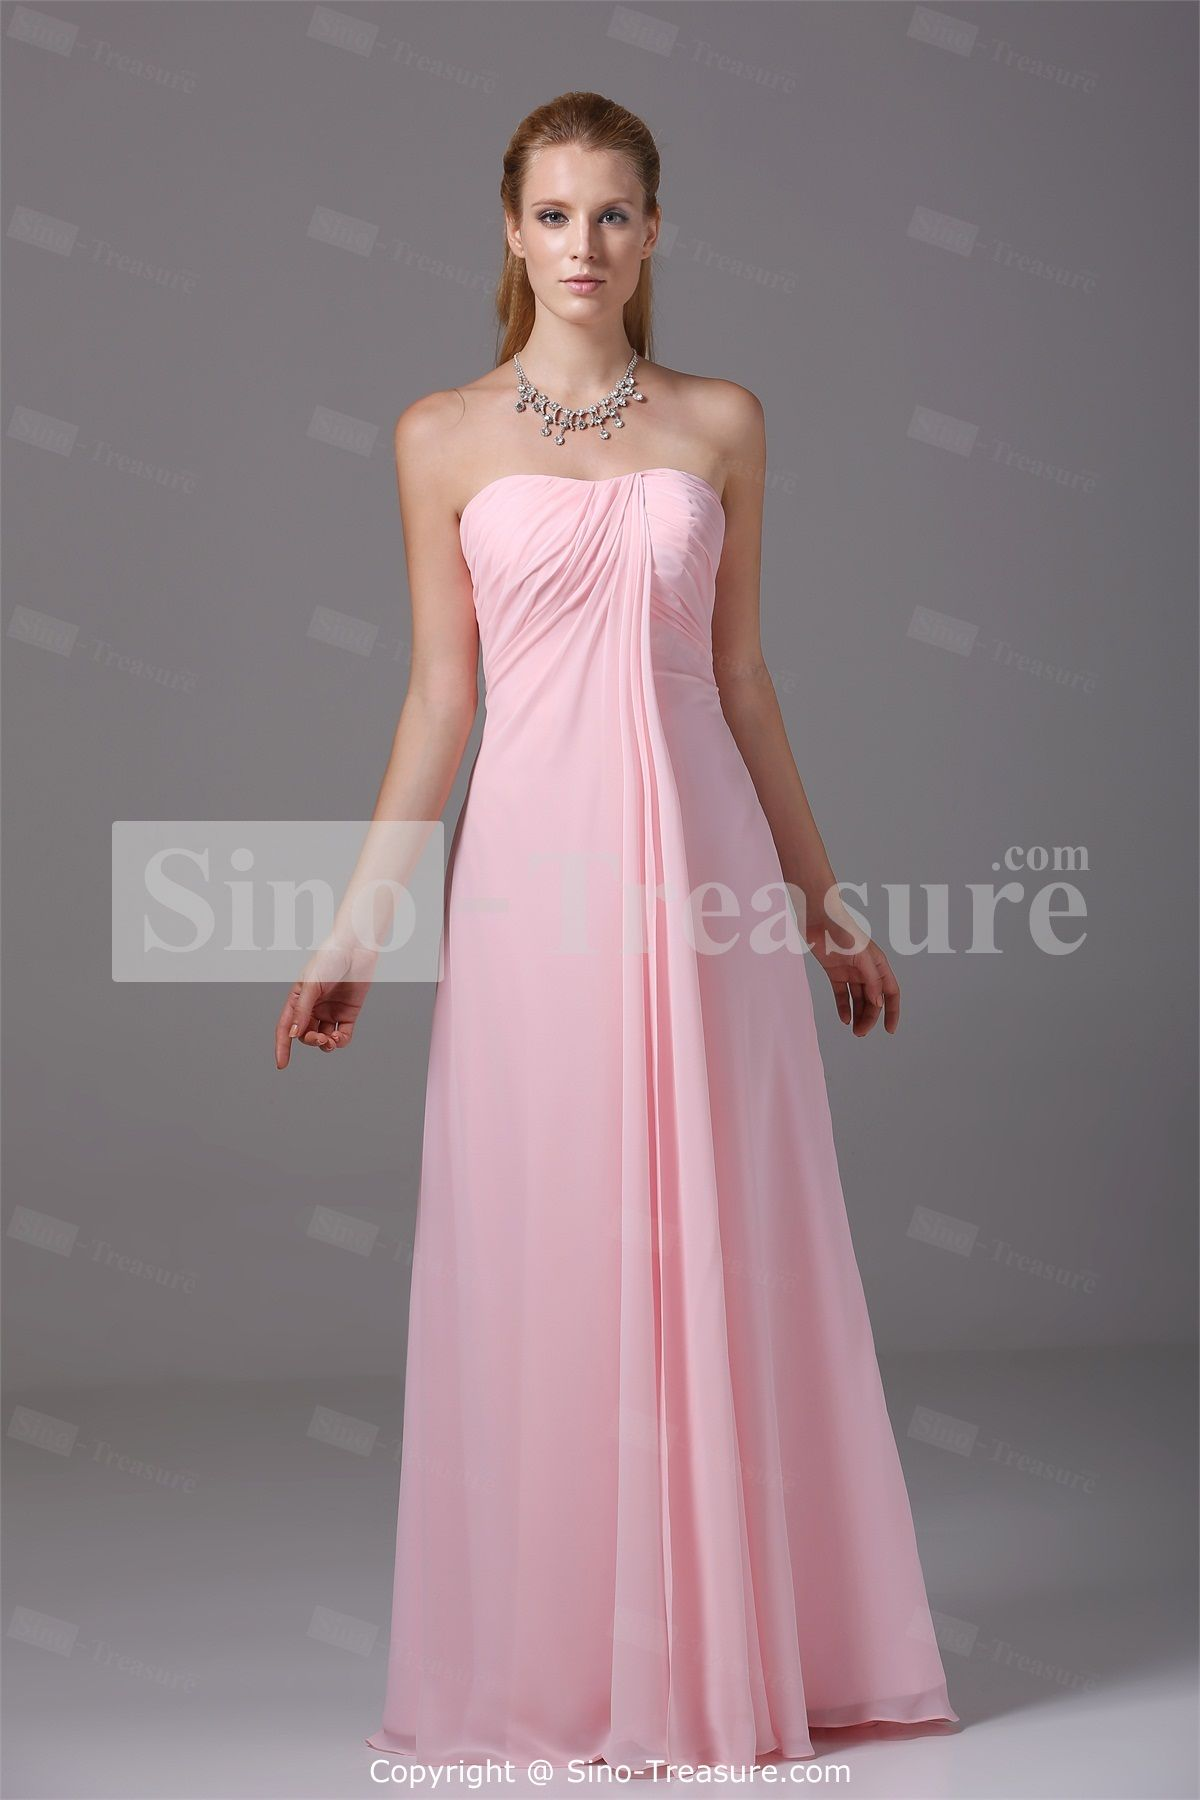 Pink Pearl Floor-Length Satin/ Chiffon Strapless Bridesmaid ...